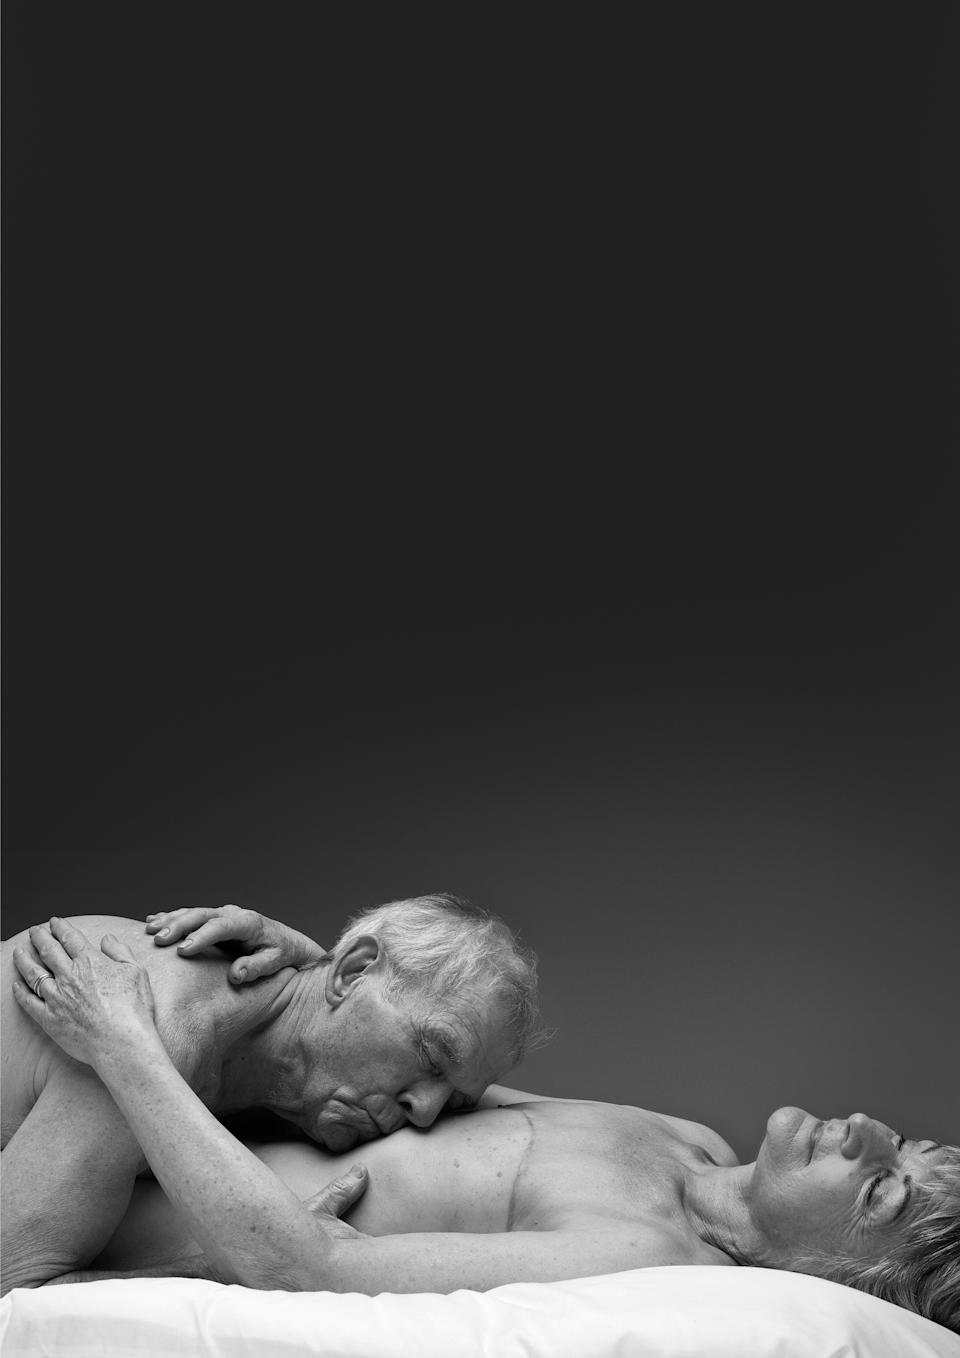 The campaign features various stories of intimacy between people in their senior years. (Rankin/Relate)